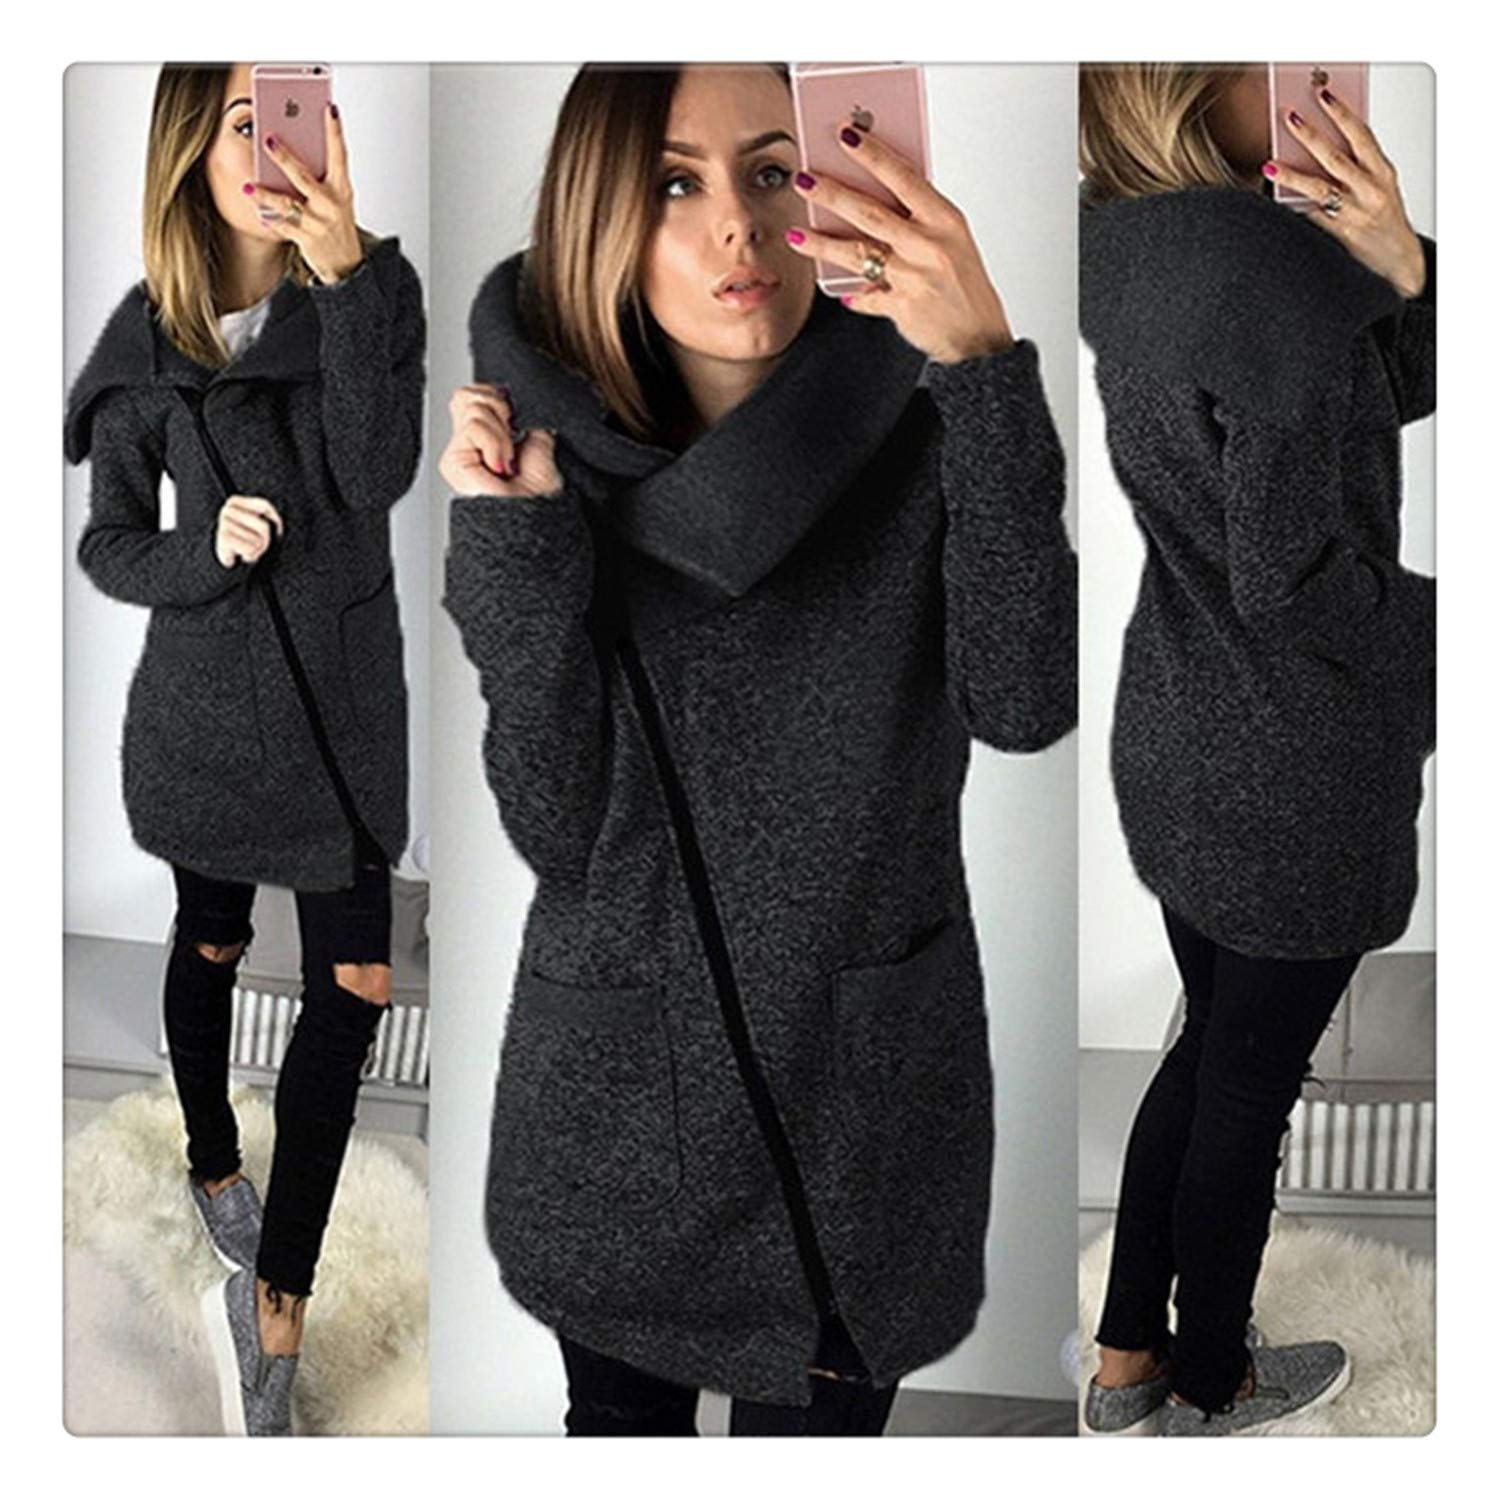 Amazon.com: Hangwucha Women Spring Winter Fleece Sweatshirt Hoodie Long Zipper Hoodies Jacket Coat Outwear Plus Size 5XL Sudaderas para Mujer Black 4XL: ...